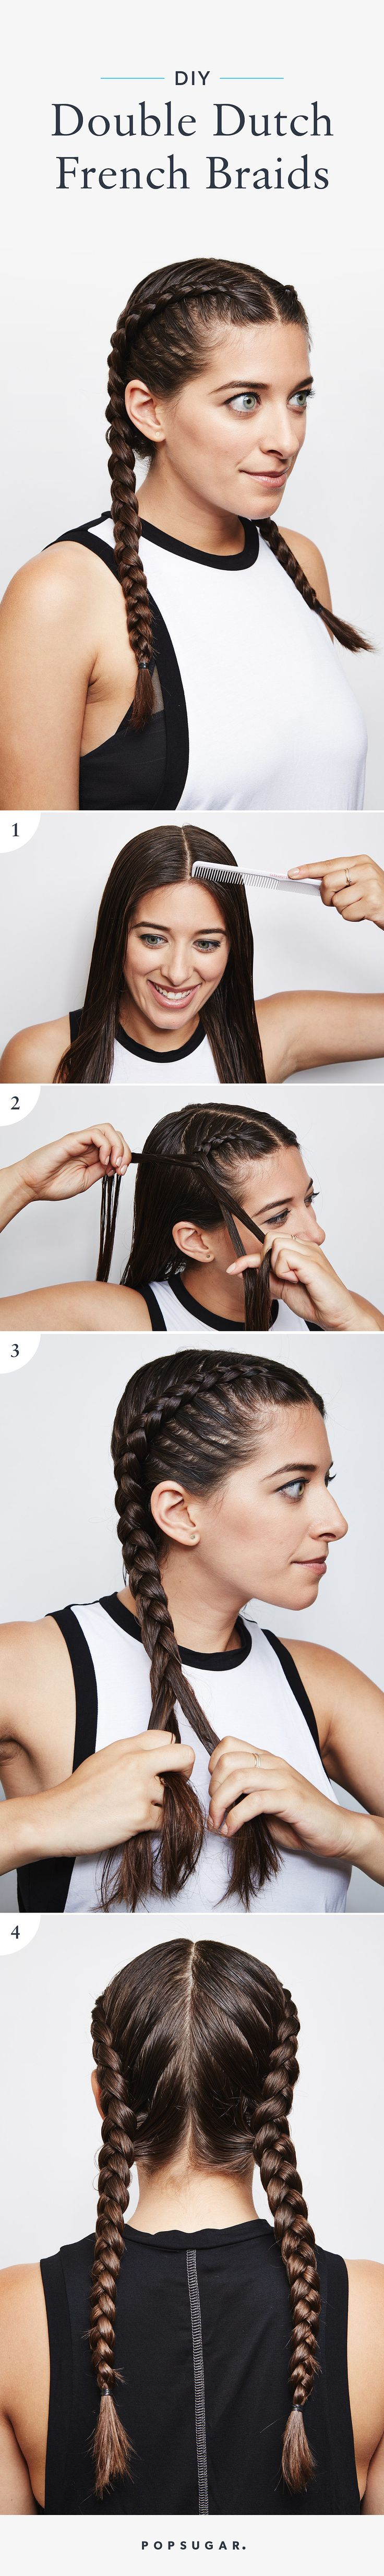 DIY Double Dutch French Braids perfect for your next cardio workout